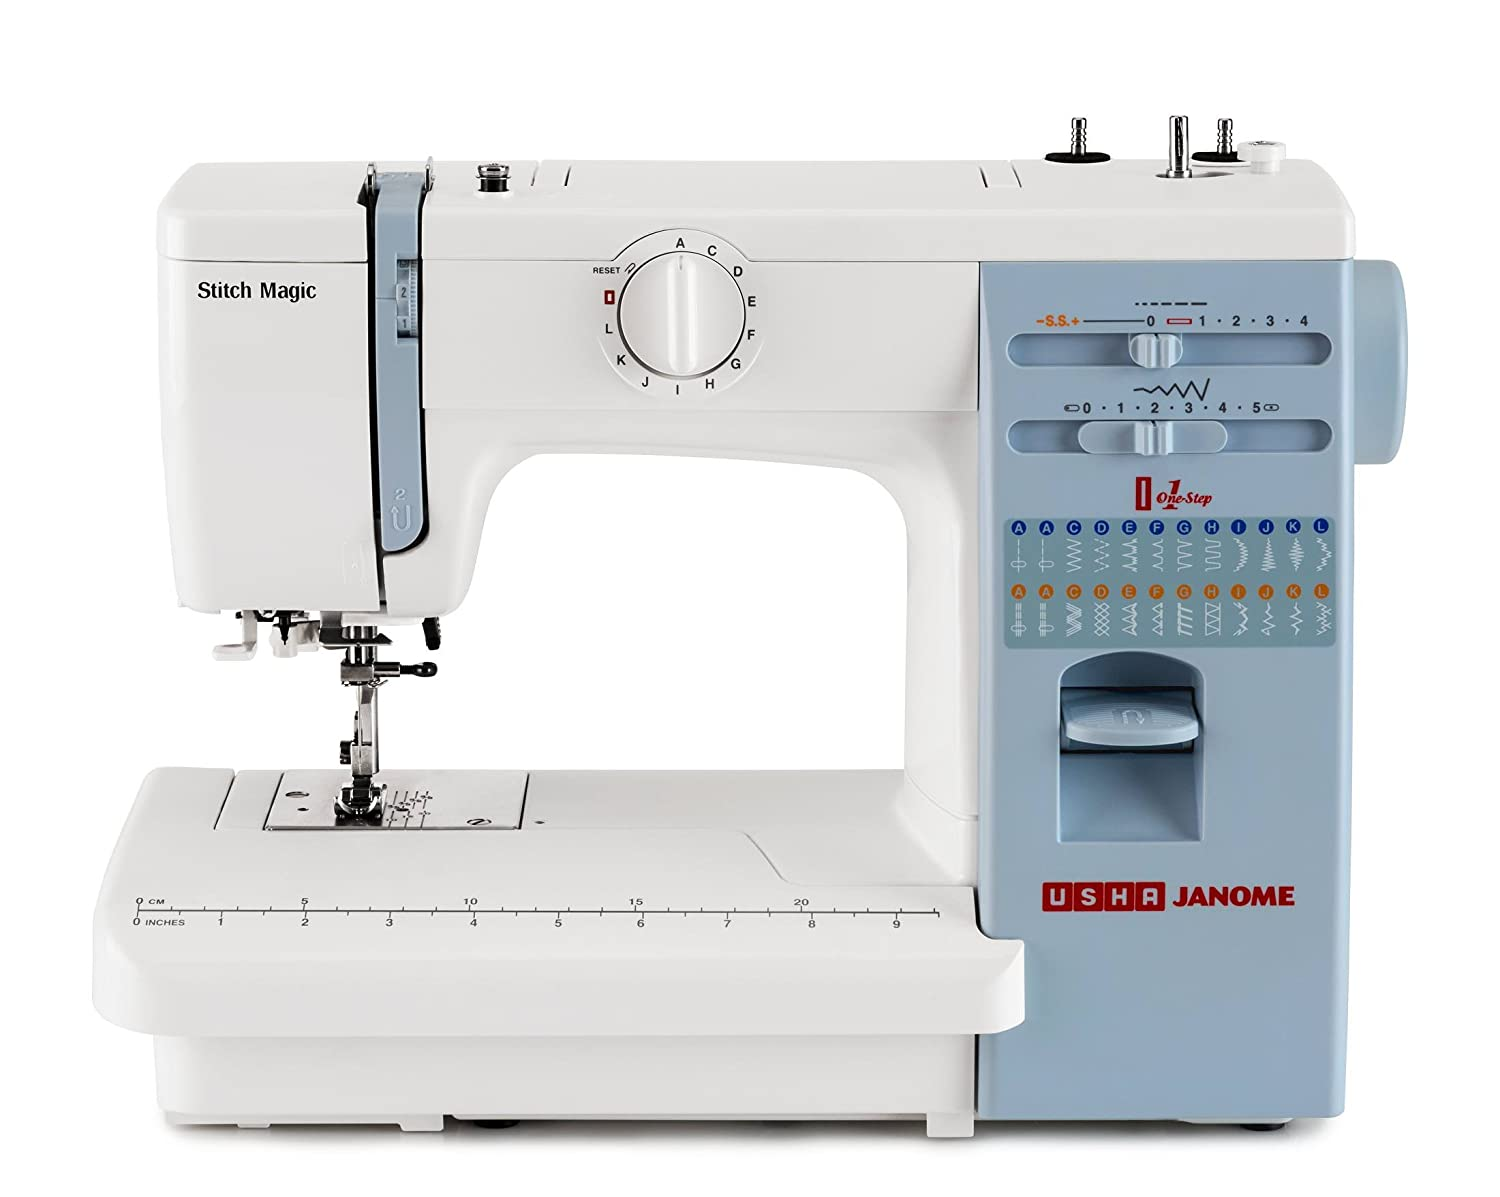 Usha Janome Automatic Stitch Magic Sewing Machine (White And Blue)